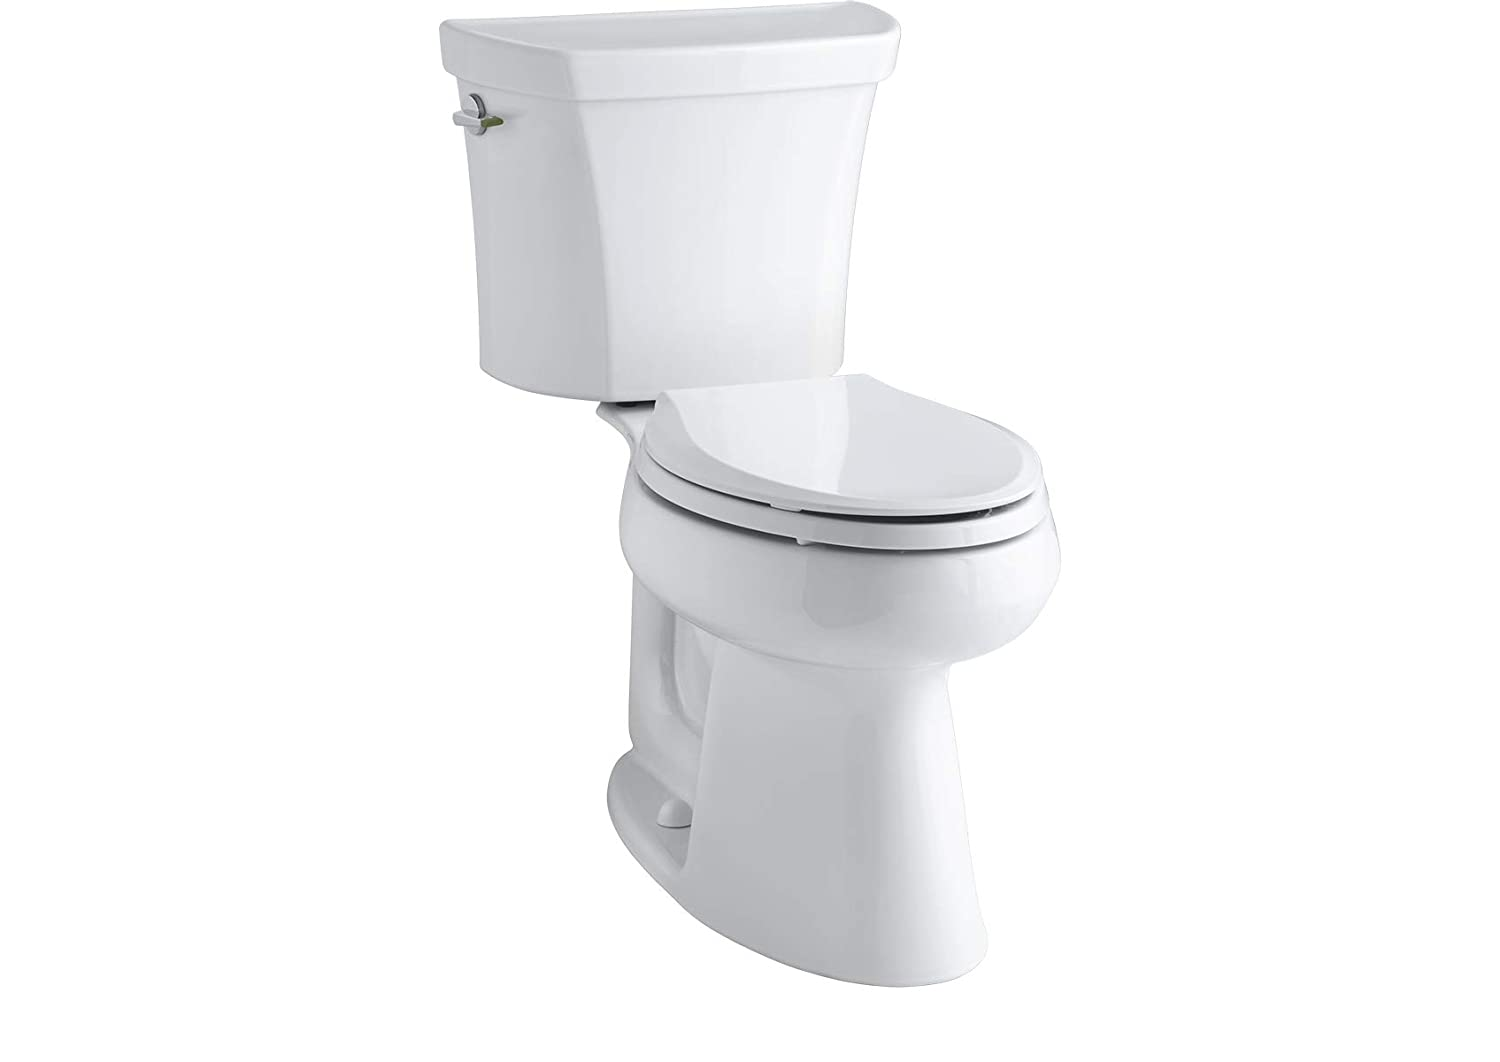 KOHLER K-3989-7 Wellworth Highline Two-Piece Dual-Flush Elongated Toilet with Class Five Flush System and Left-Hand Trip Lever Black